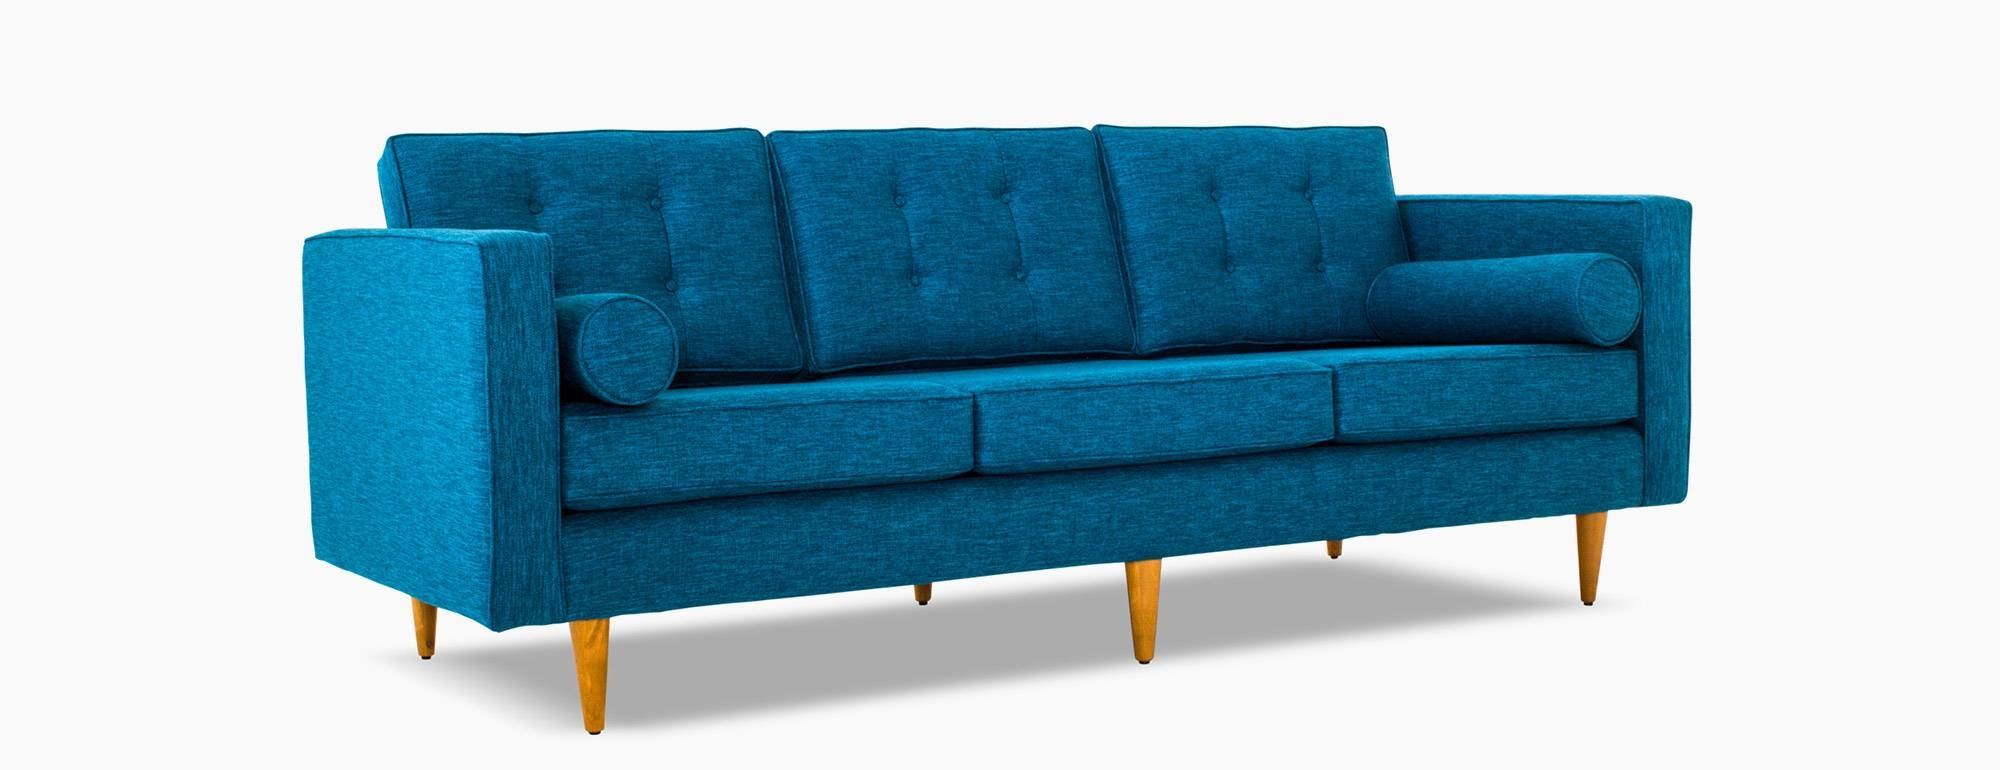 Braxton Sofa | Joybird regarding Braxton Sofa (Image 24 of 30)